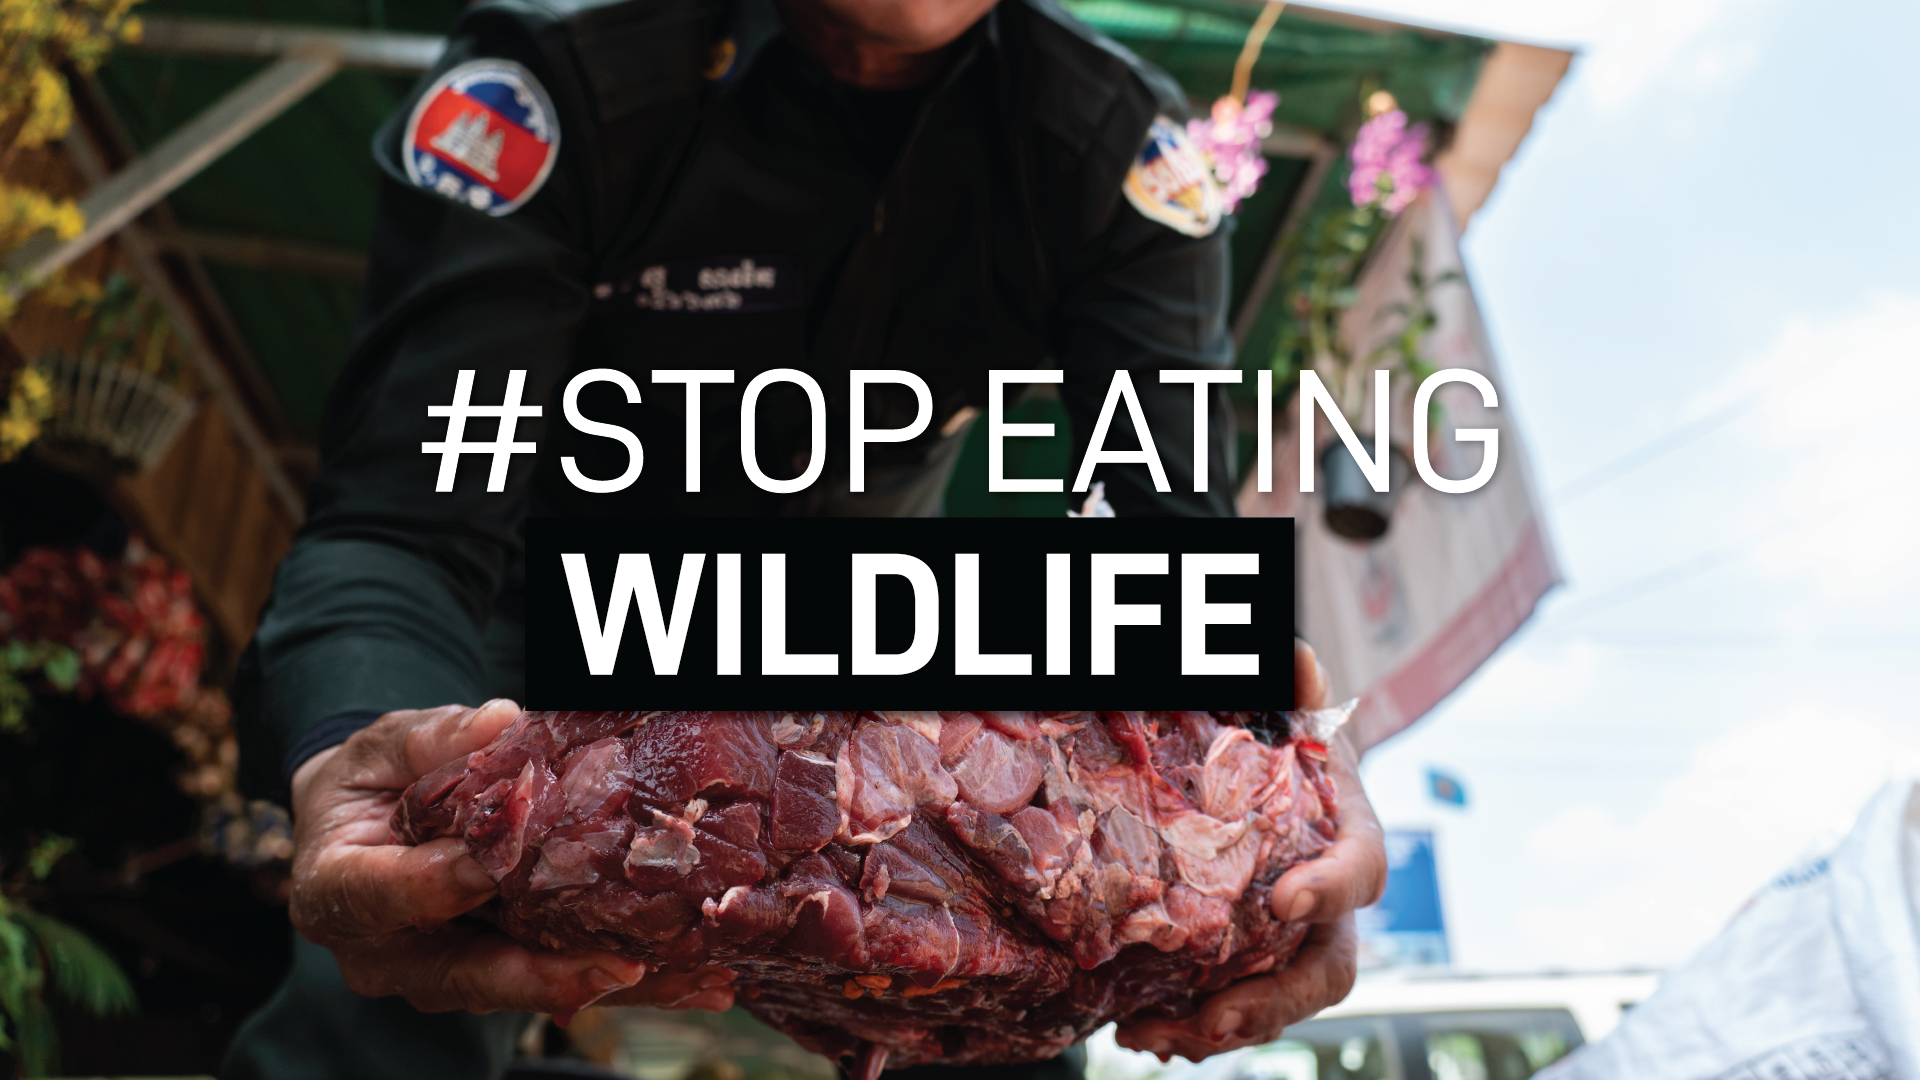 Wildlife Alliance launches #StopEatingWildlife campaign